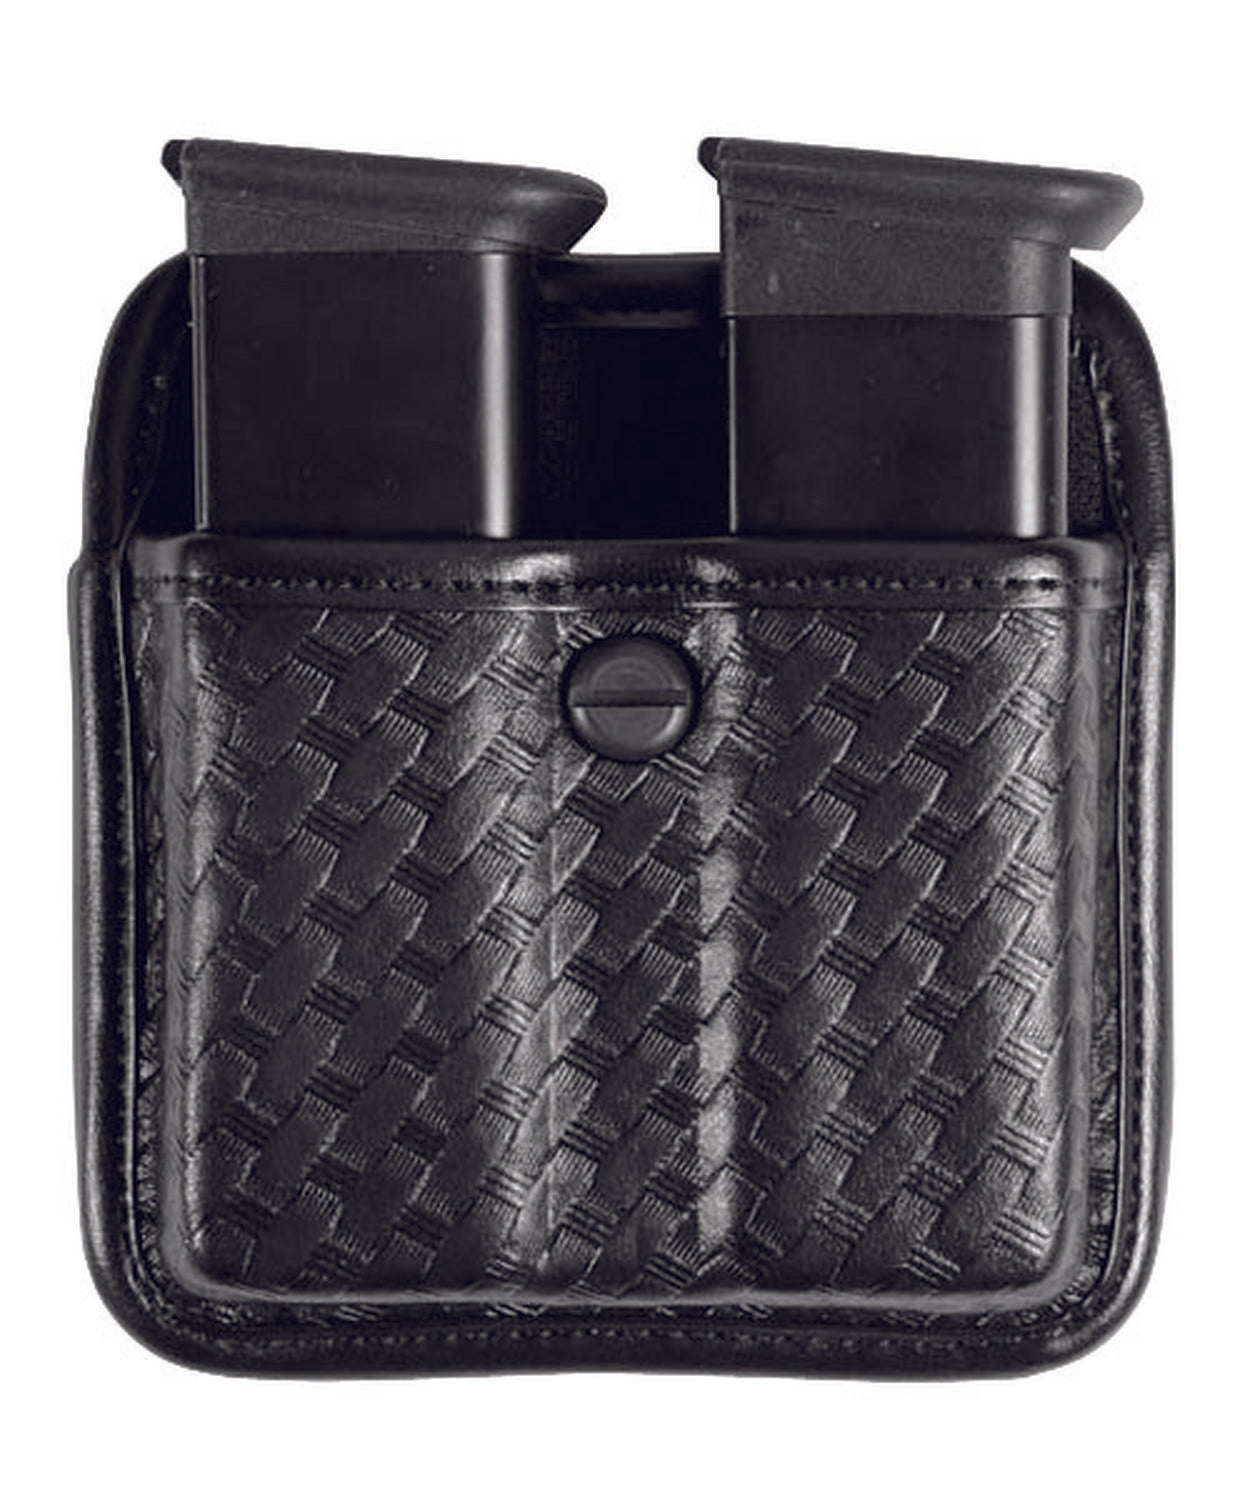 BIANCHI Model 7922 Triple Threat™ II Double Magazine Pouch - red-diamond-uniform-police-supply